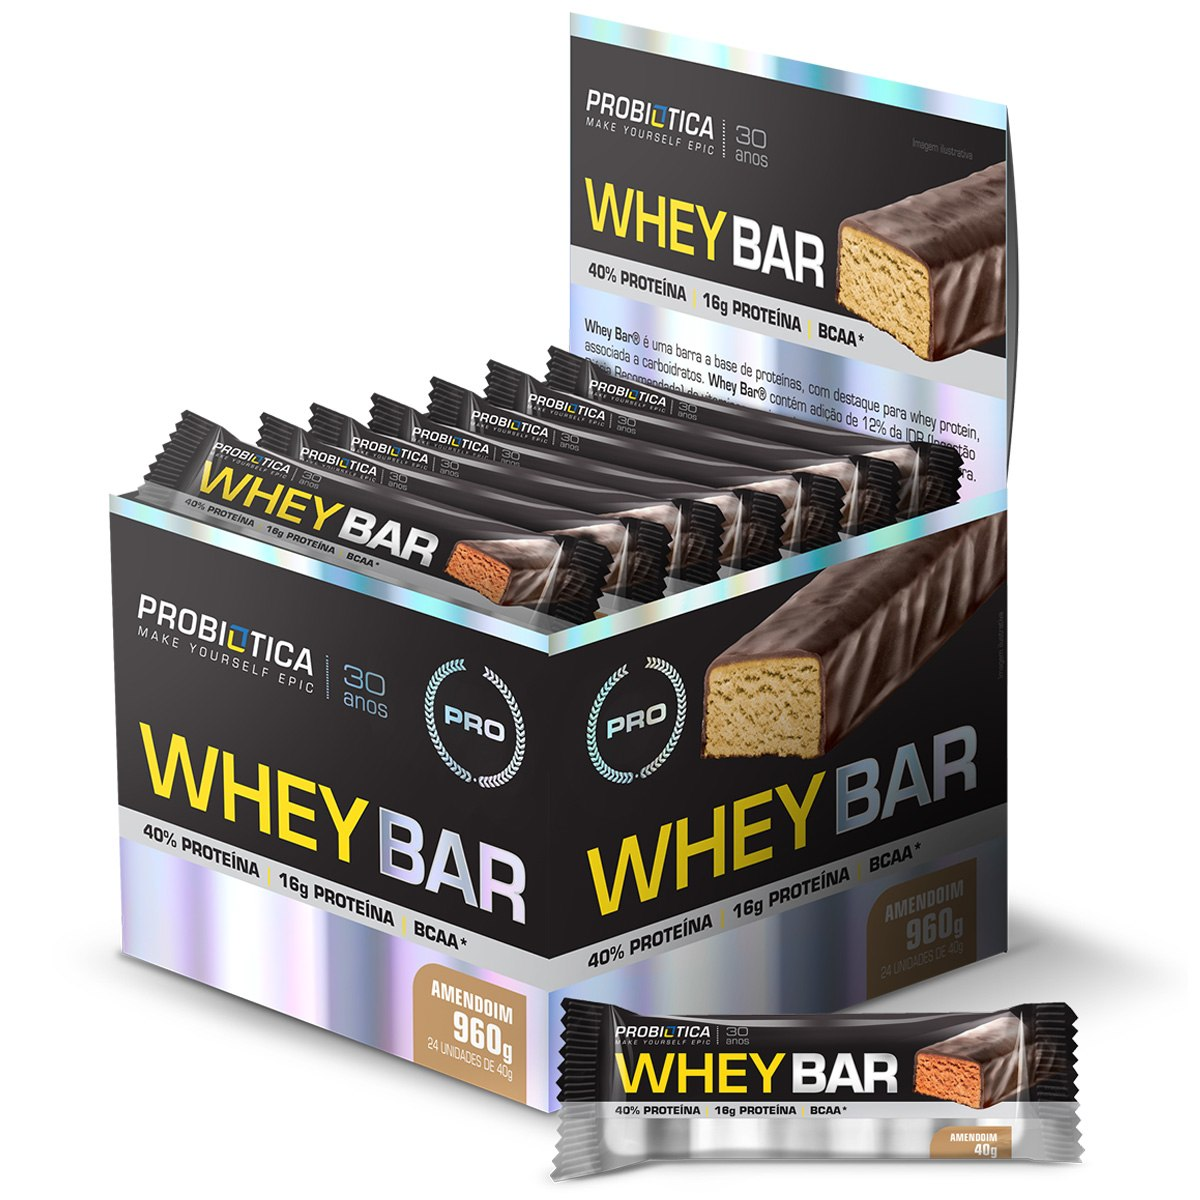 BARRA WHEY BAR PROBIOTICA AMENDOIM (cx 24x40g)